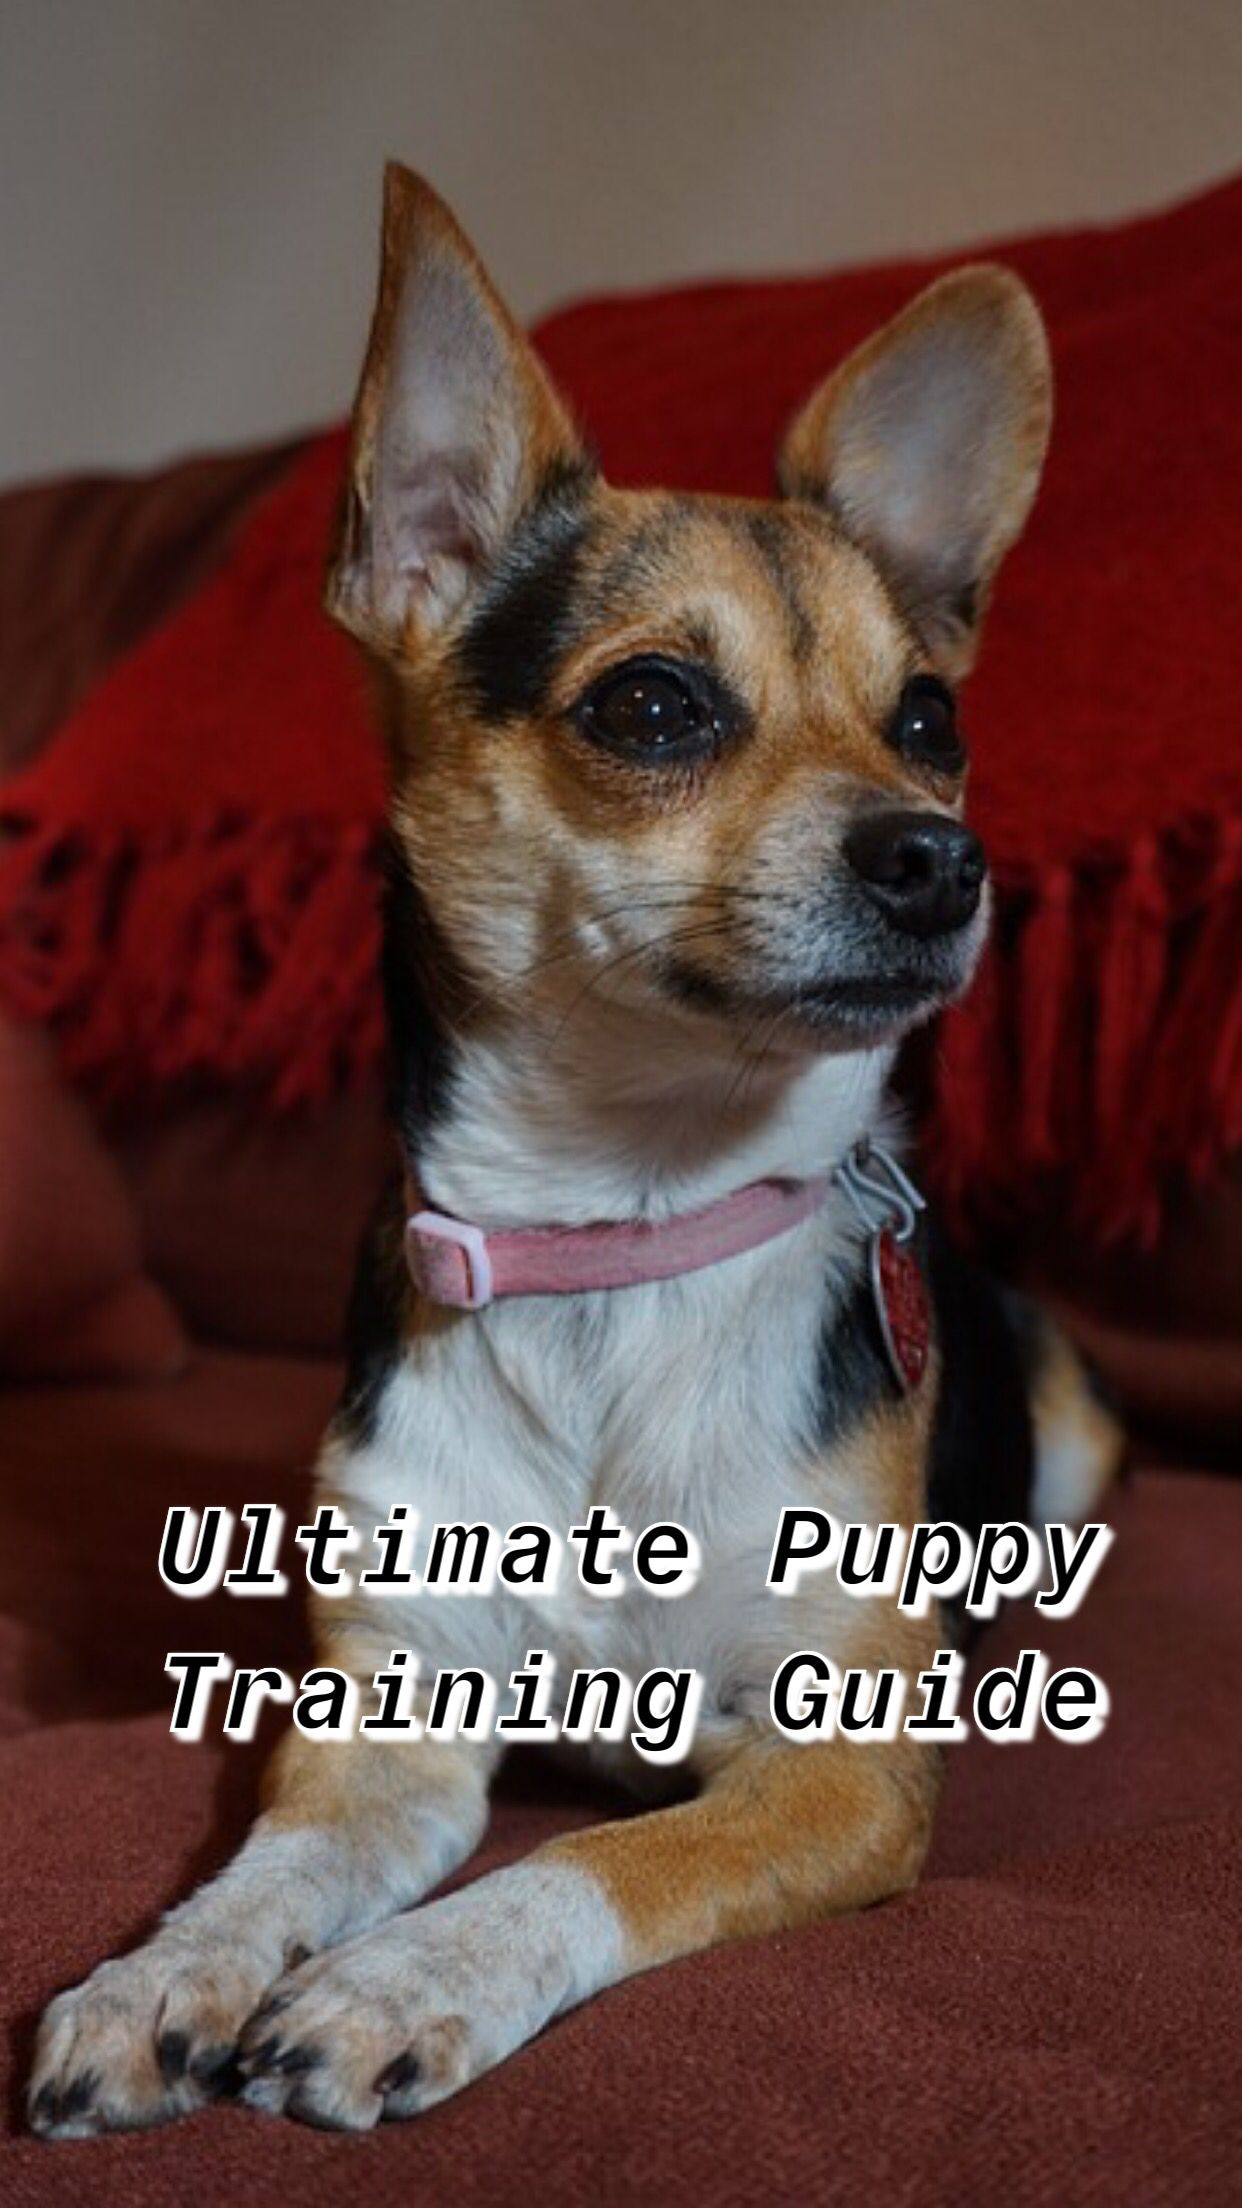 Dog Training Come Dogs Training Puppy Ideas Puppy Toys Puppy